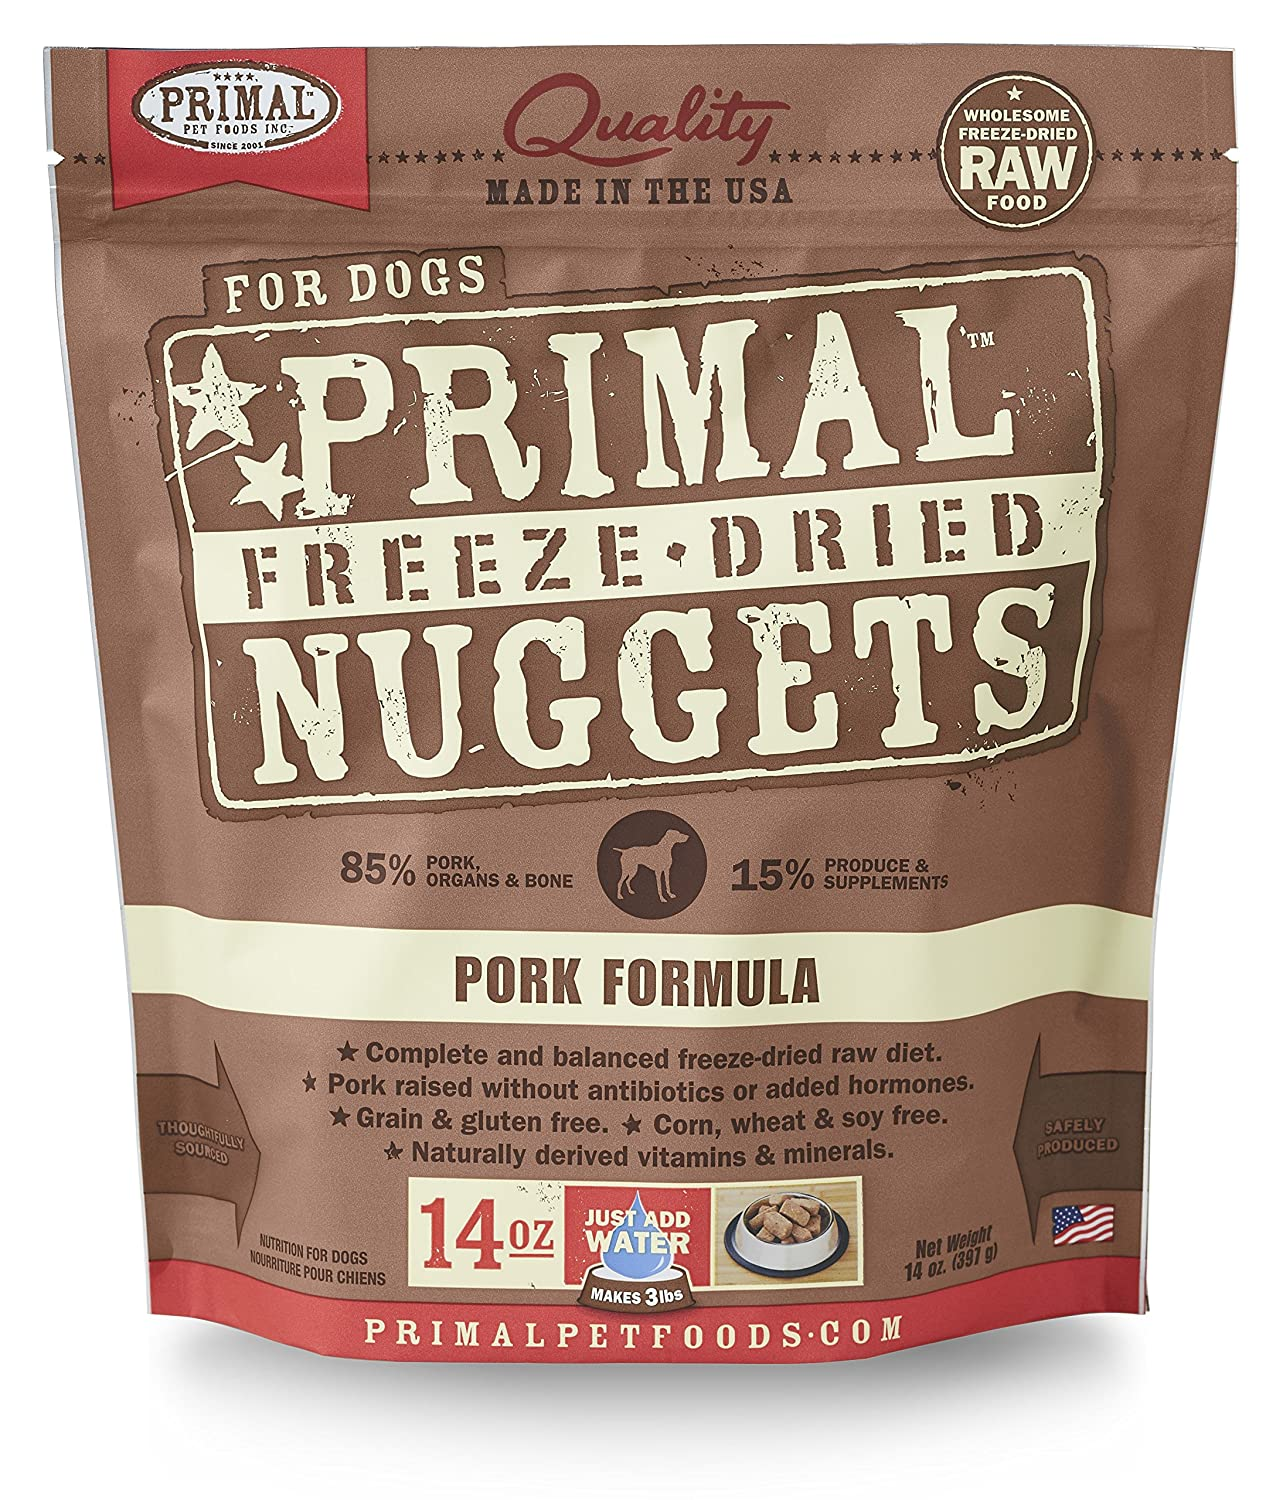 Primal Pet Foods Freeze – Dried Nuggets Dog Food